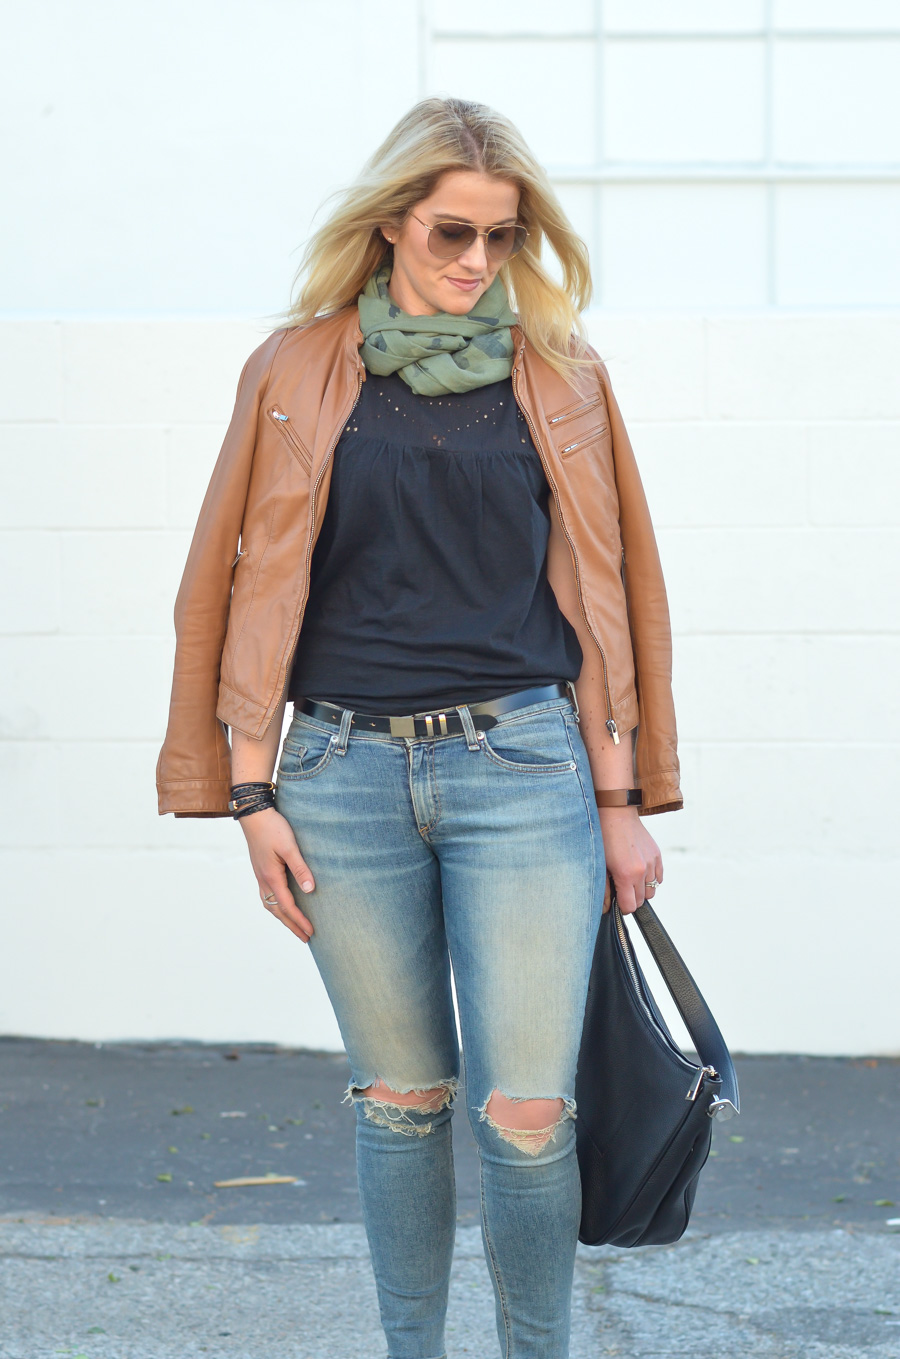 Rag & Bone Ripped Skinny Jeans + Leather Jacket Outfit for Women